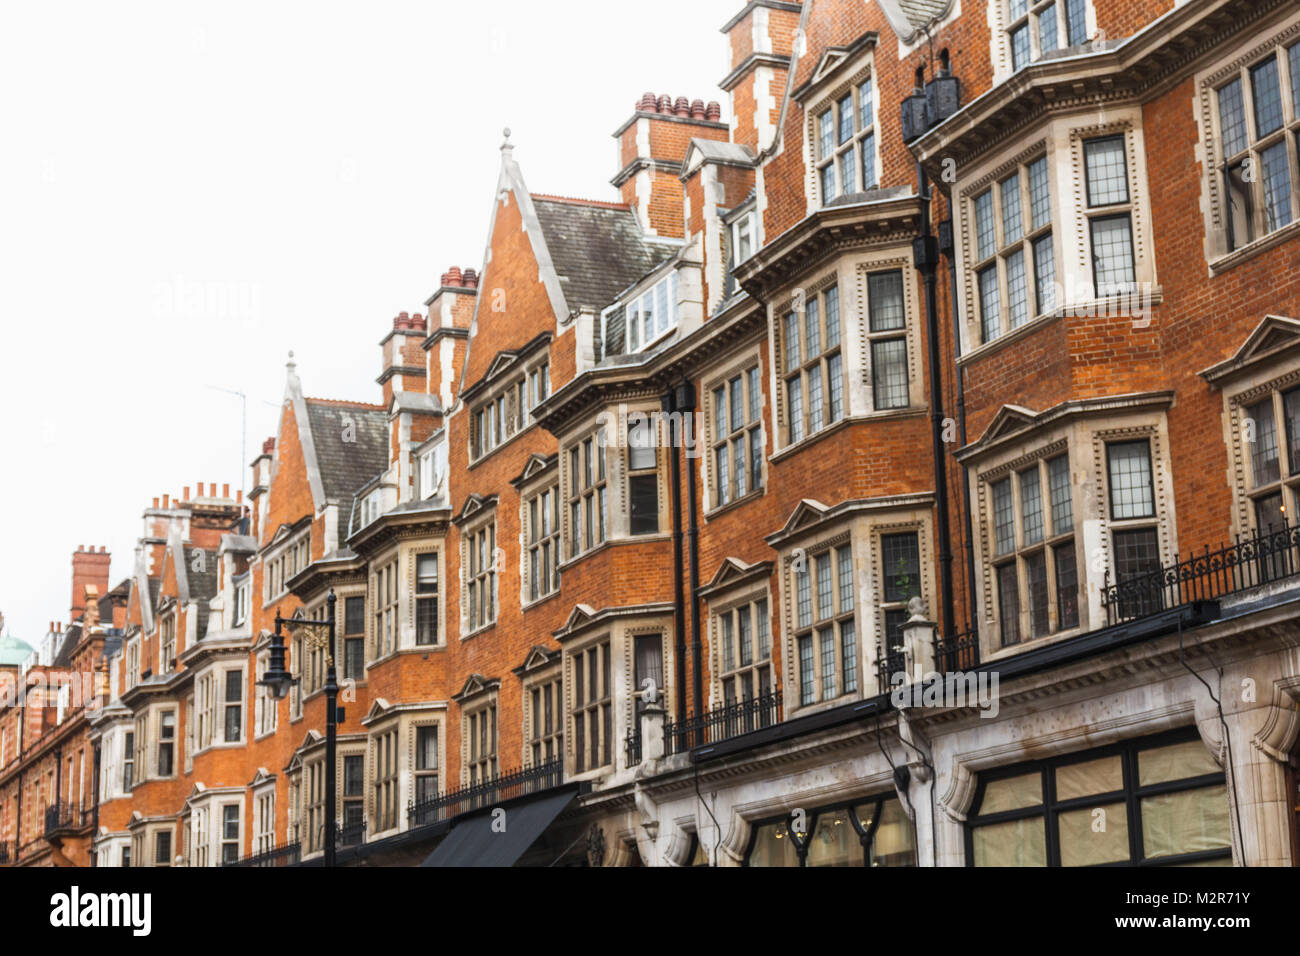 Hassade close bay windows and constructions of a London town house - Stock Image